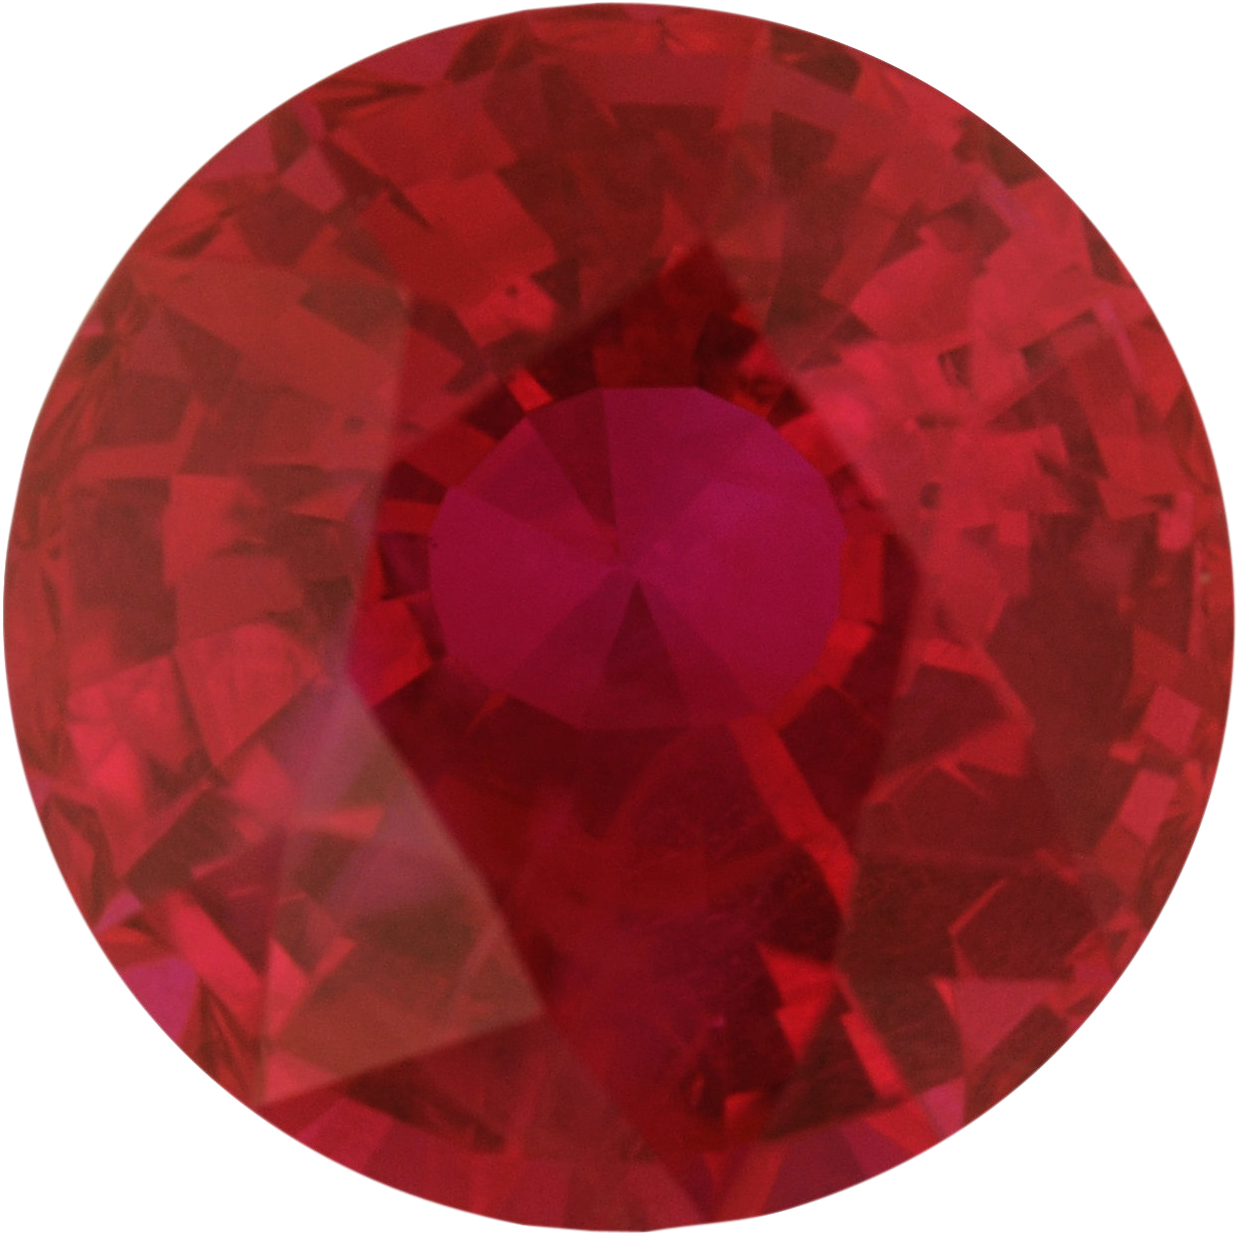 6.06 mm, Ruby Loose Gemstone in Round Cut, 1.09 carats